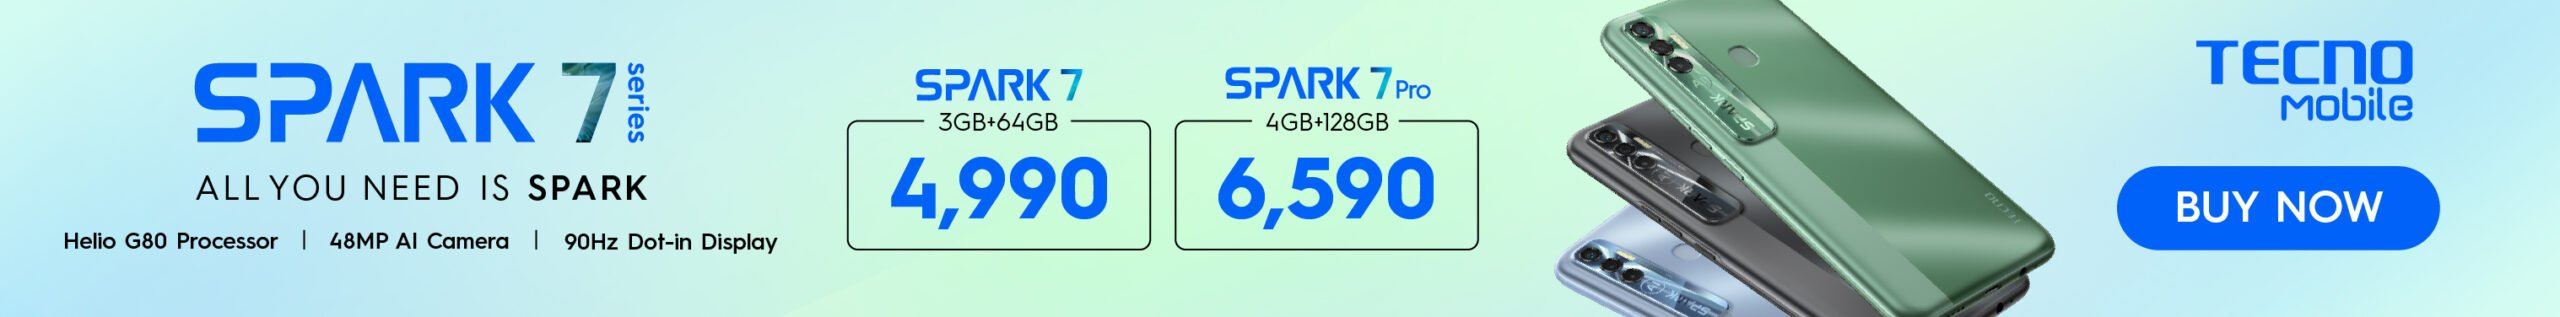 Tecno Spark 6 Go changed to Camon 17 06/29 to Spark 7 Pro 08/18